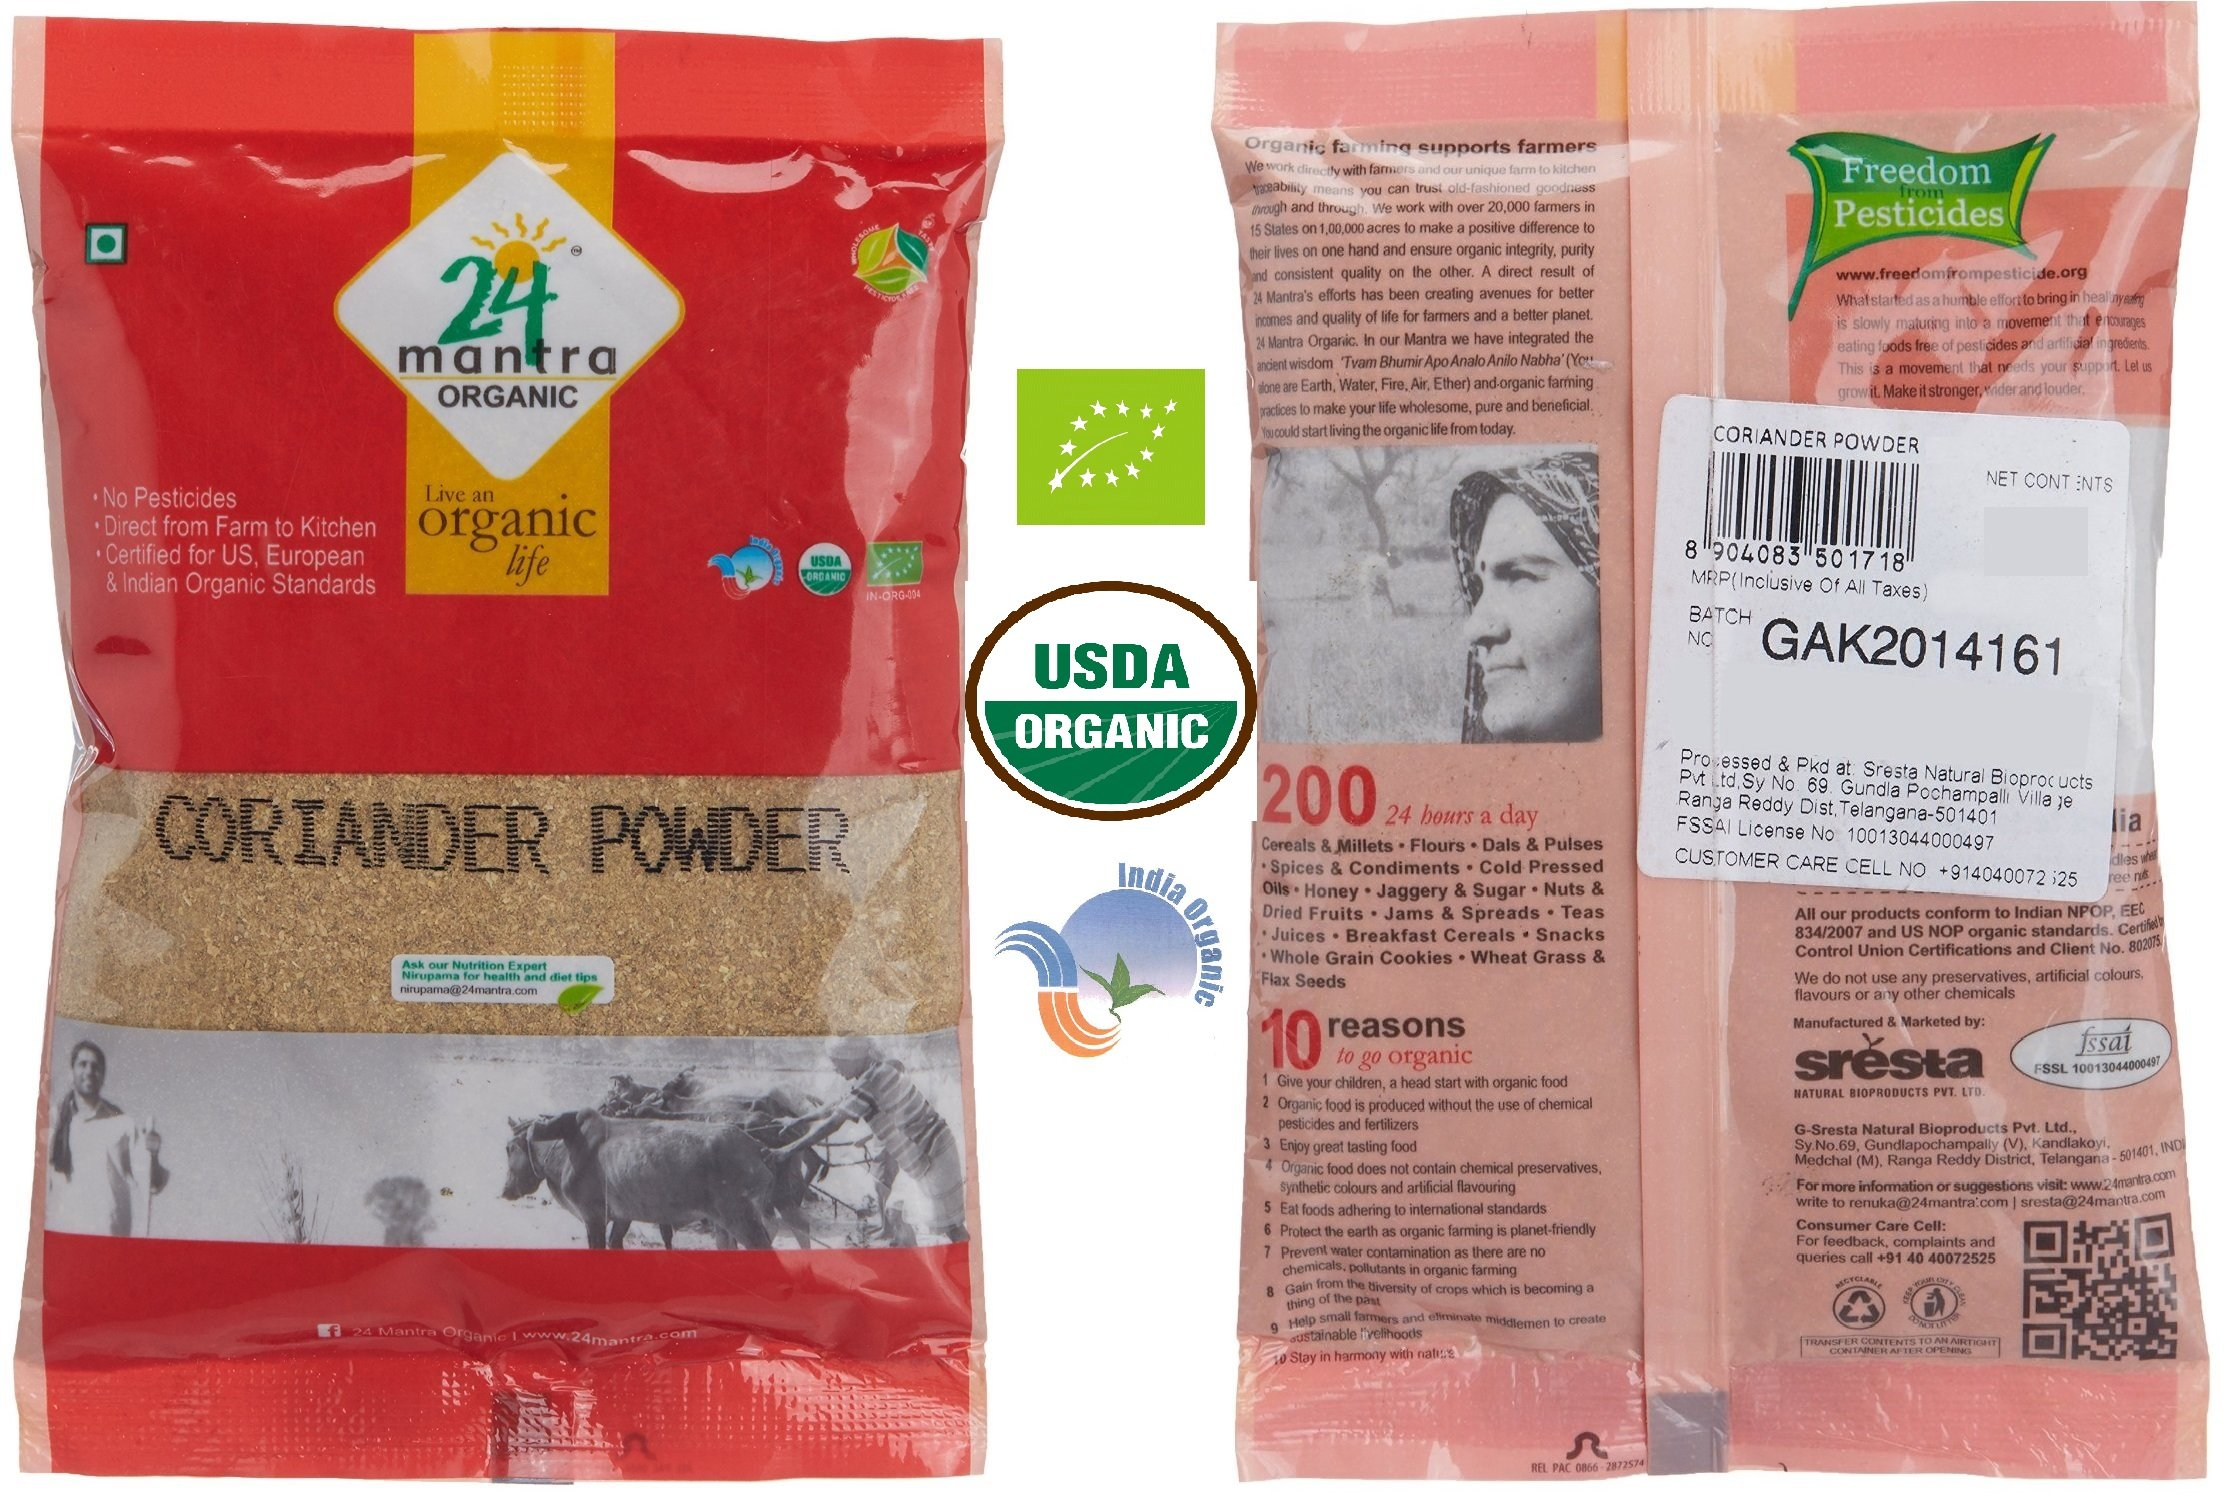 Organic Coriander Powder - Coriander Seeds Powder - ★ USDA Certified Organic - ★ European Union Certified Organic - ★ Pesticides Free - ★ Adulteration Free - ★ Sodium Free - Pack of 2 X 7 Ounces(14 Ounces) - 24 Mantra Organic by 24 MANTRA (Image #2)